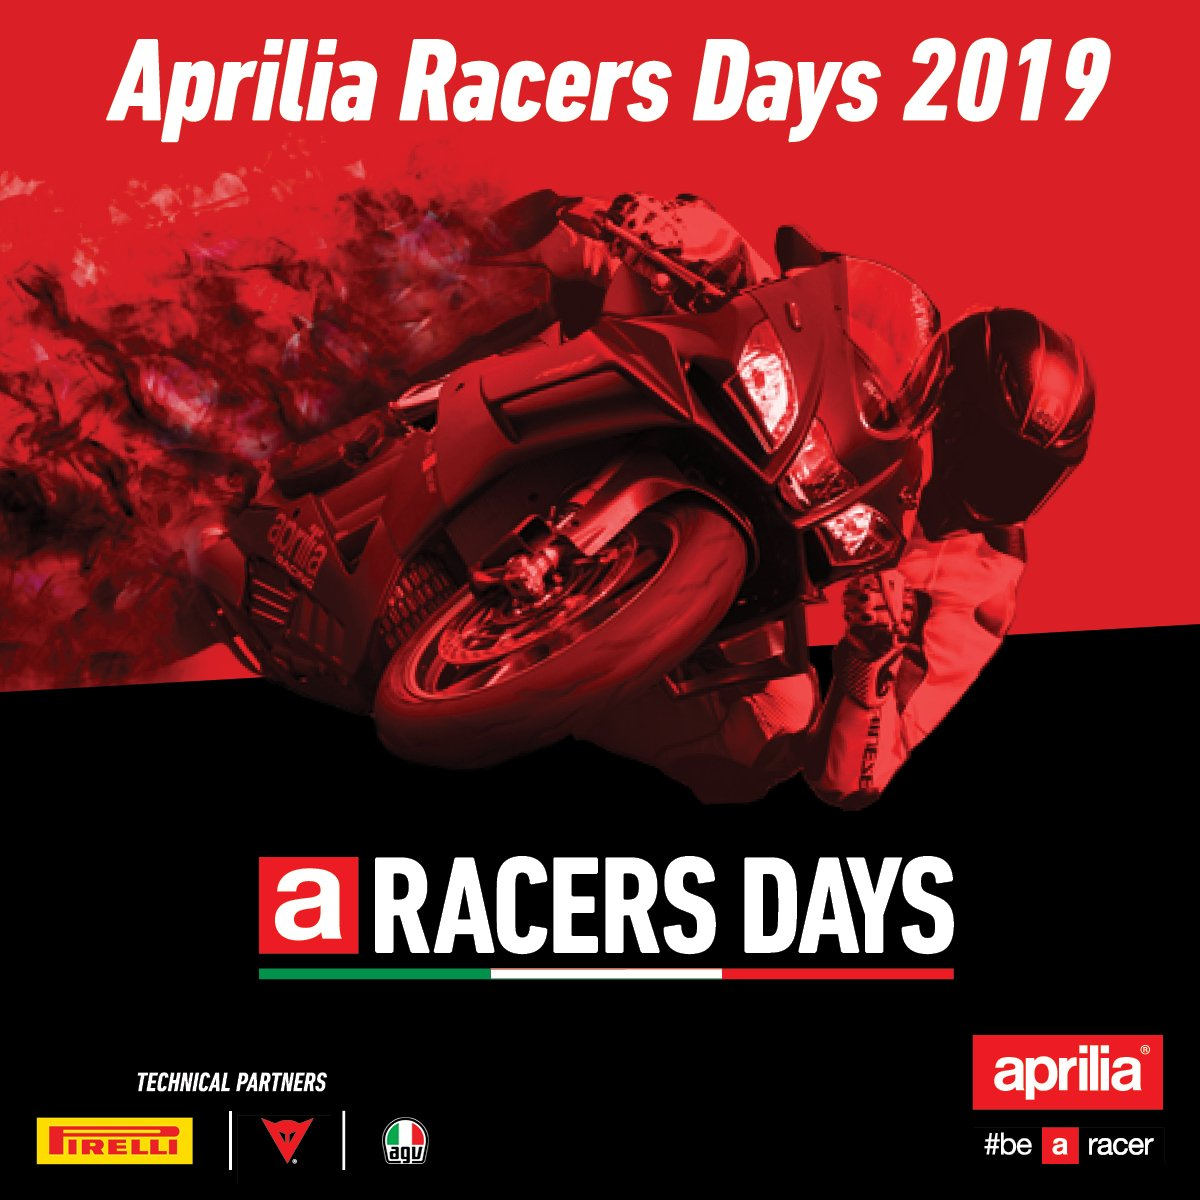 Our 2019 #ApriliaRacersDays program is now live, with each round supported by our premium industry partners; @PirelliUSA, @dainese and @AGVHelmets.   Spaces are limited so books yours today; https://t.co/N8pDcISEoo  #aprilia | #pirellination | #dainesecrew | #AGVrider https://t.co/OmOwSr037F